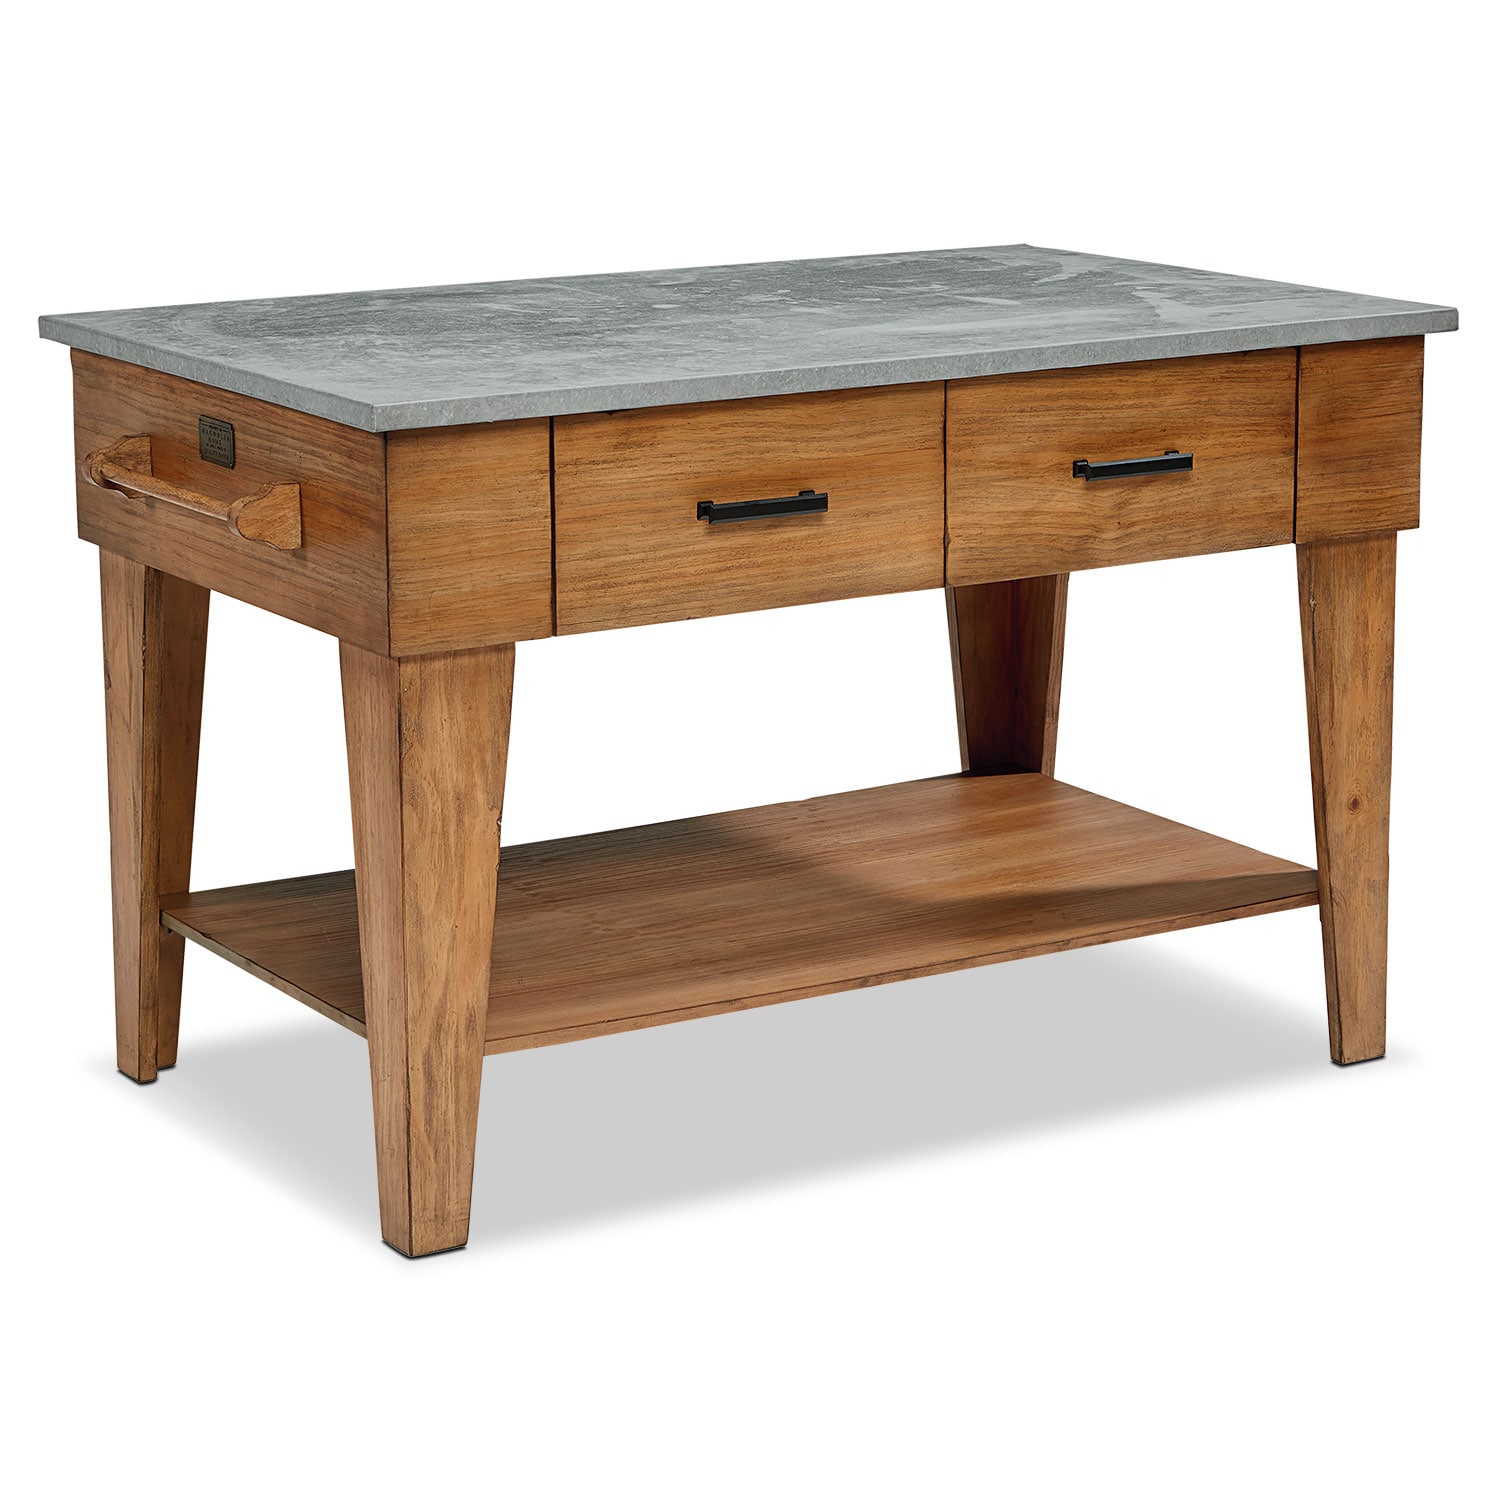 #724729 Farmhouse Kitchen Island Bench with 1500x1500 px of Best Farmhouse Kitchen Bench 15001500 image @ avoidforclosure.info